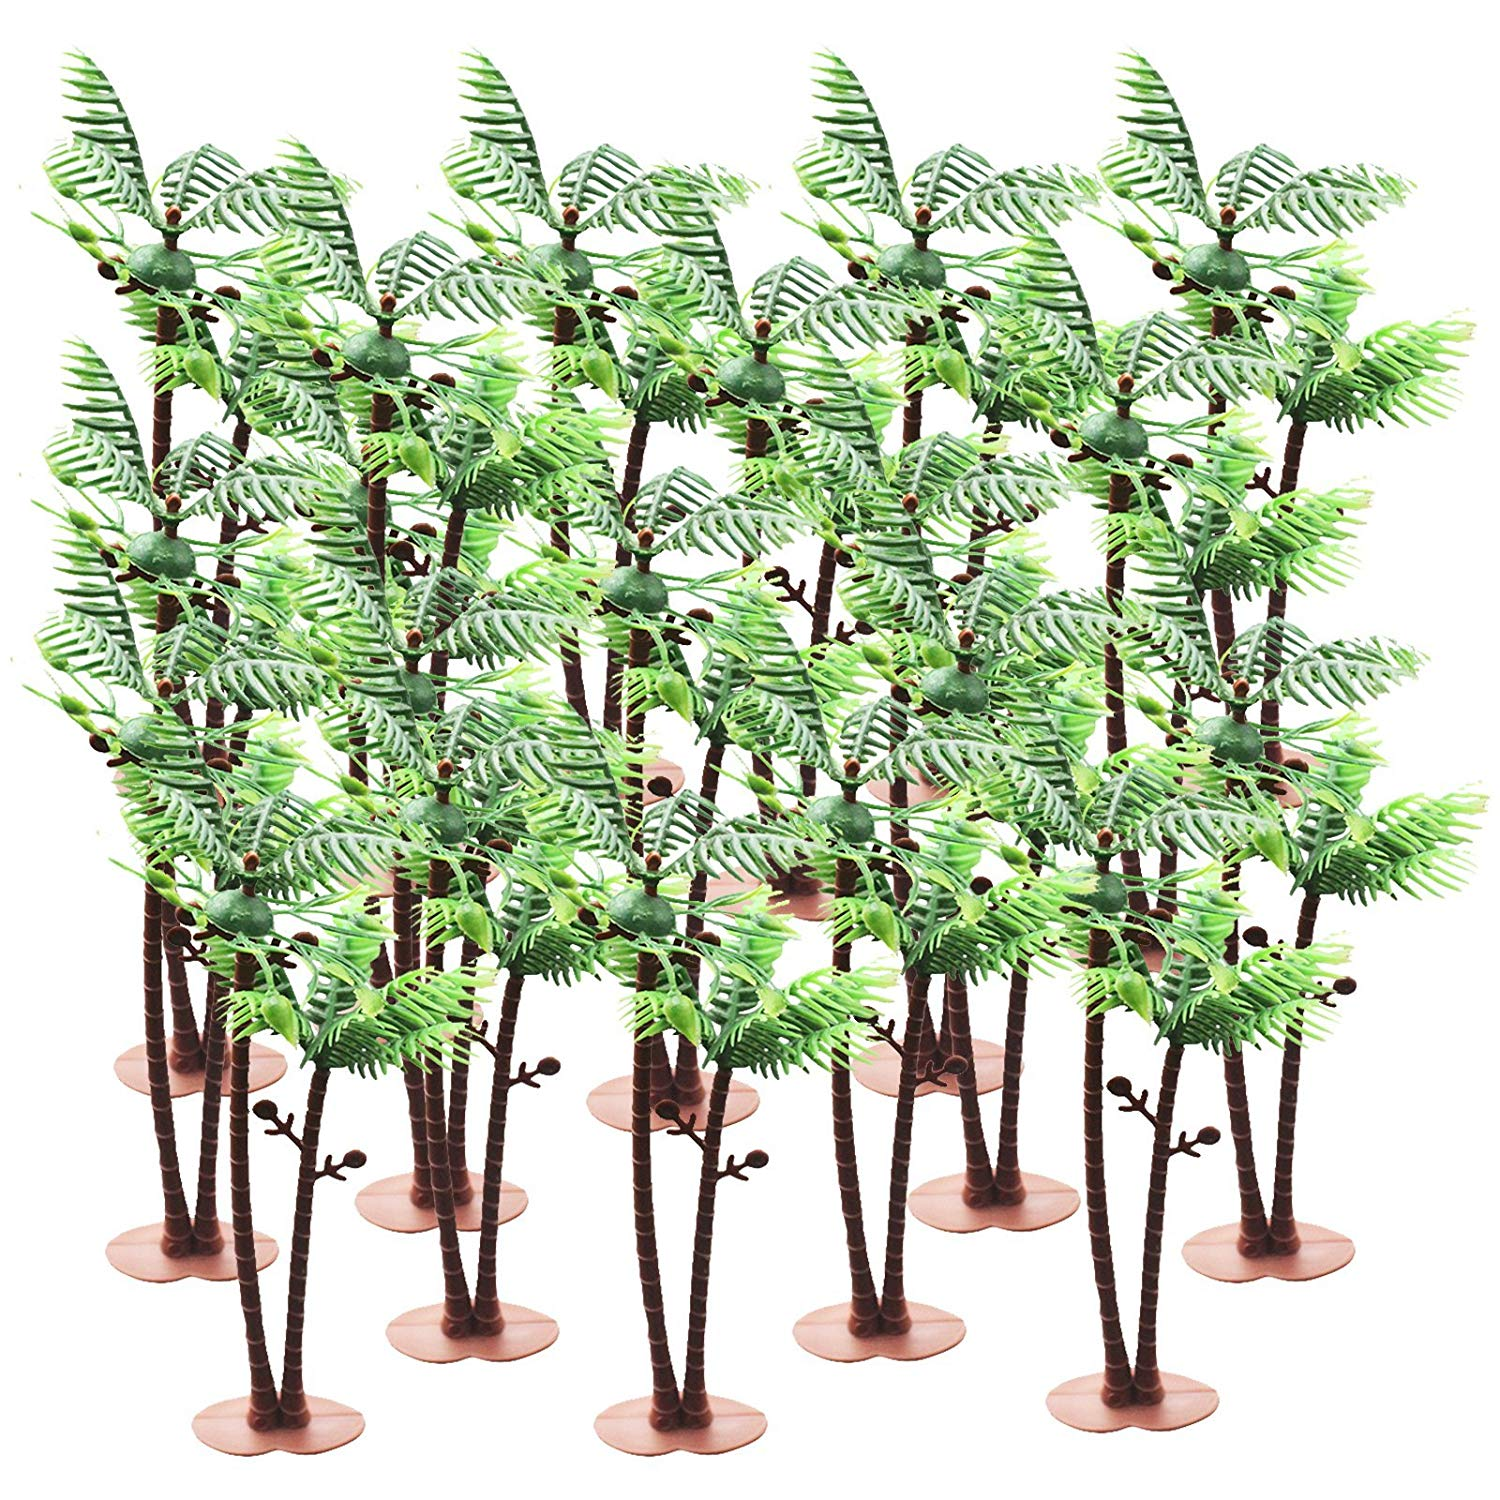 Coconut Palm Trees Set with Base 5.7inch